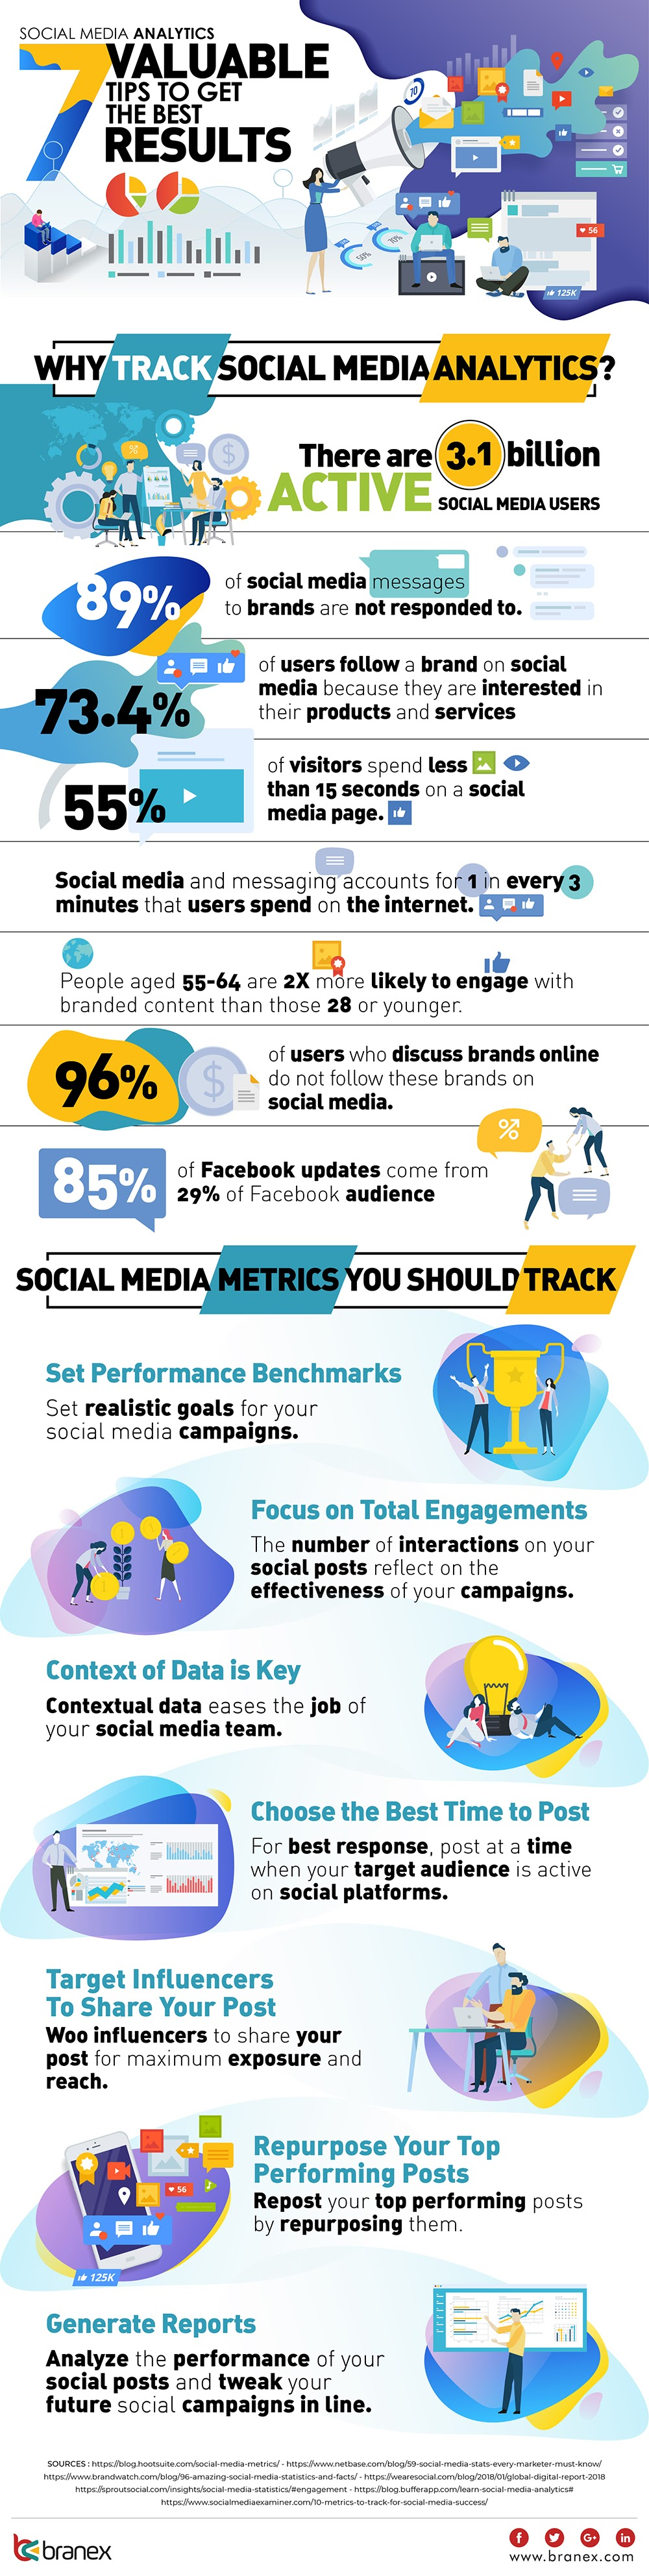 Social Media Analytics: 7 Valuable Tips to Get the Best Results #infographic